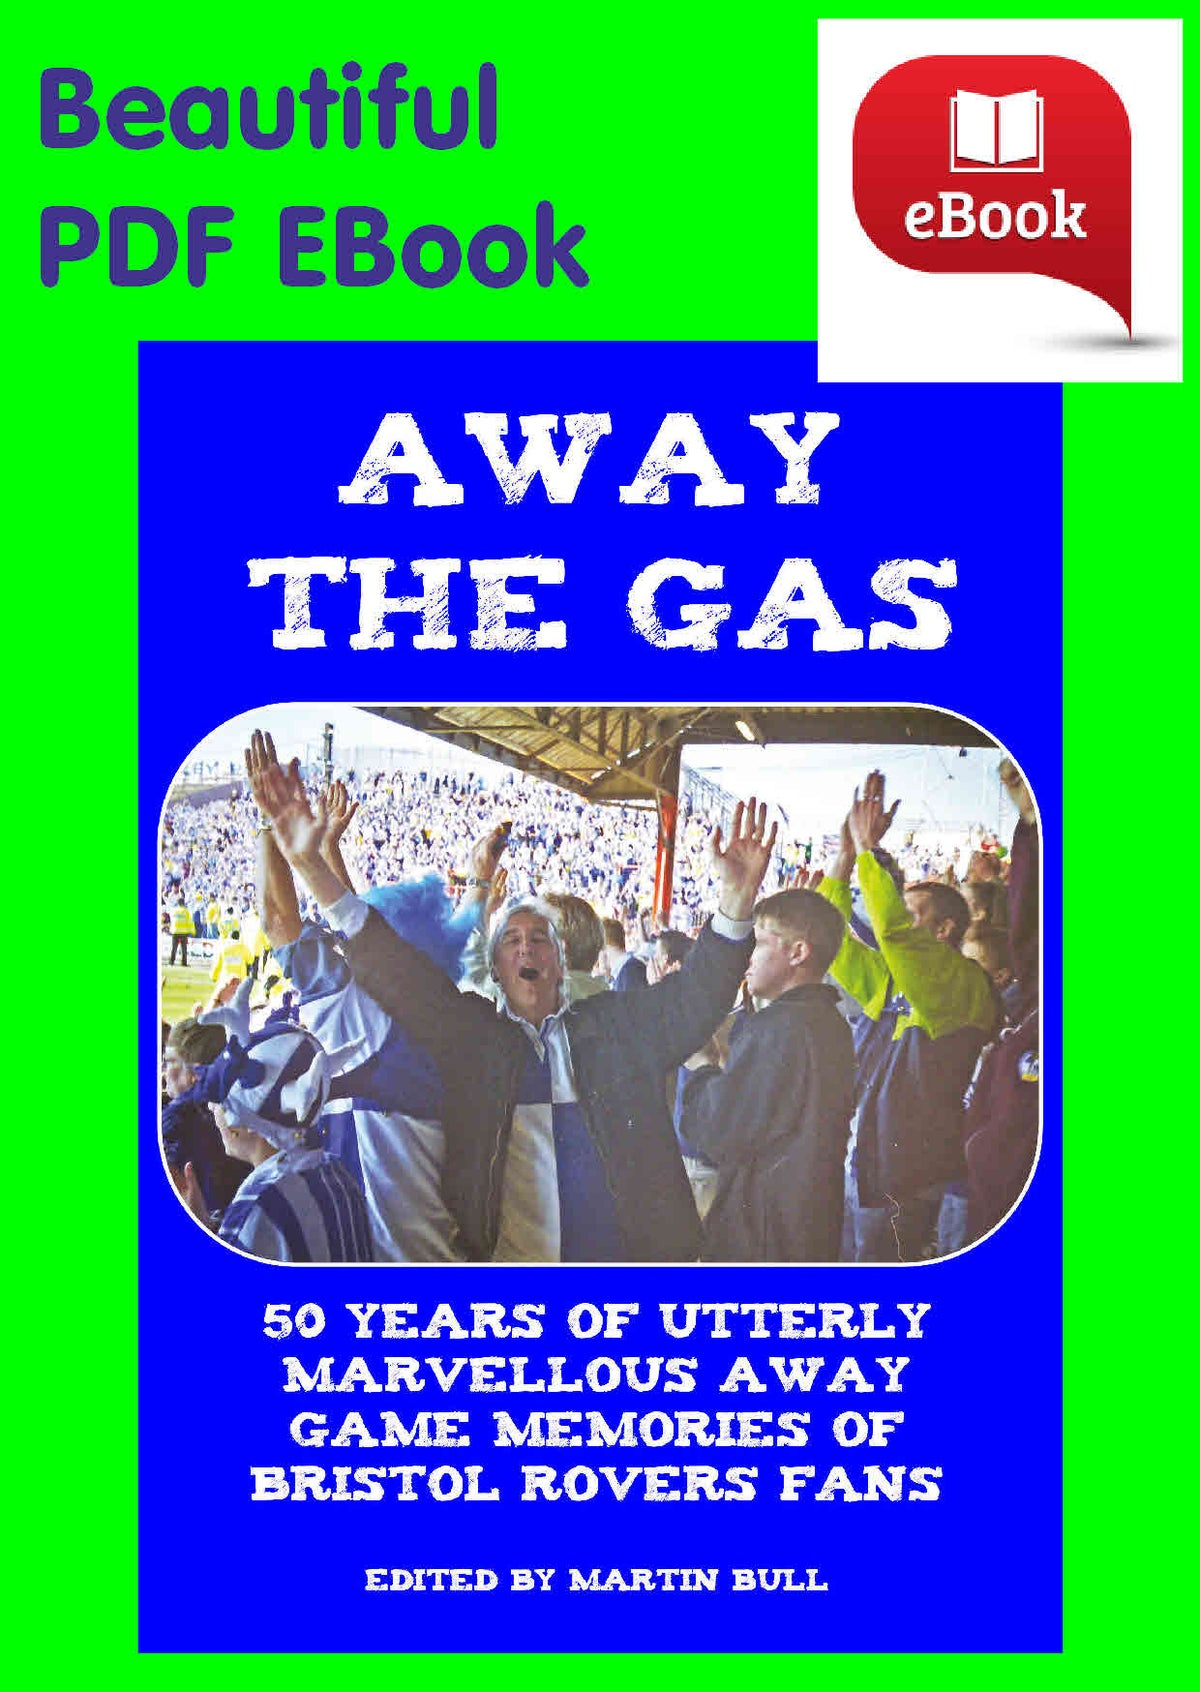 Image of Away The Gas - eBook [PDF] - Lovely 260 page colour book